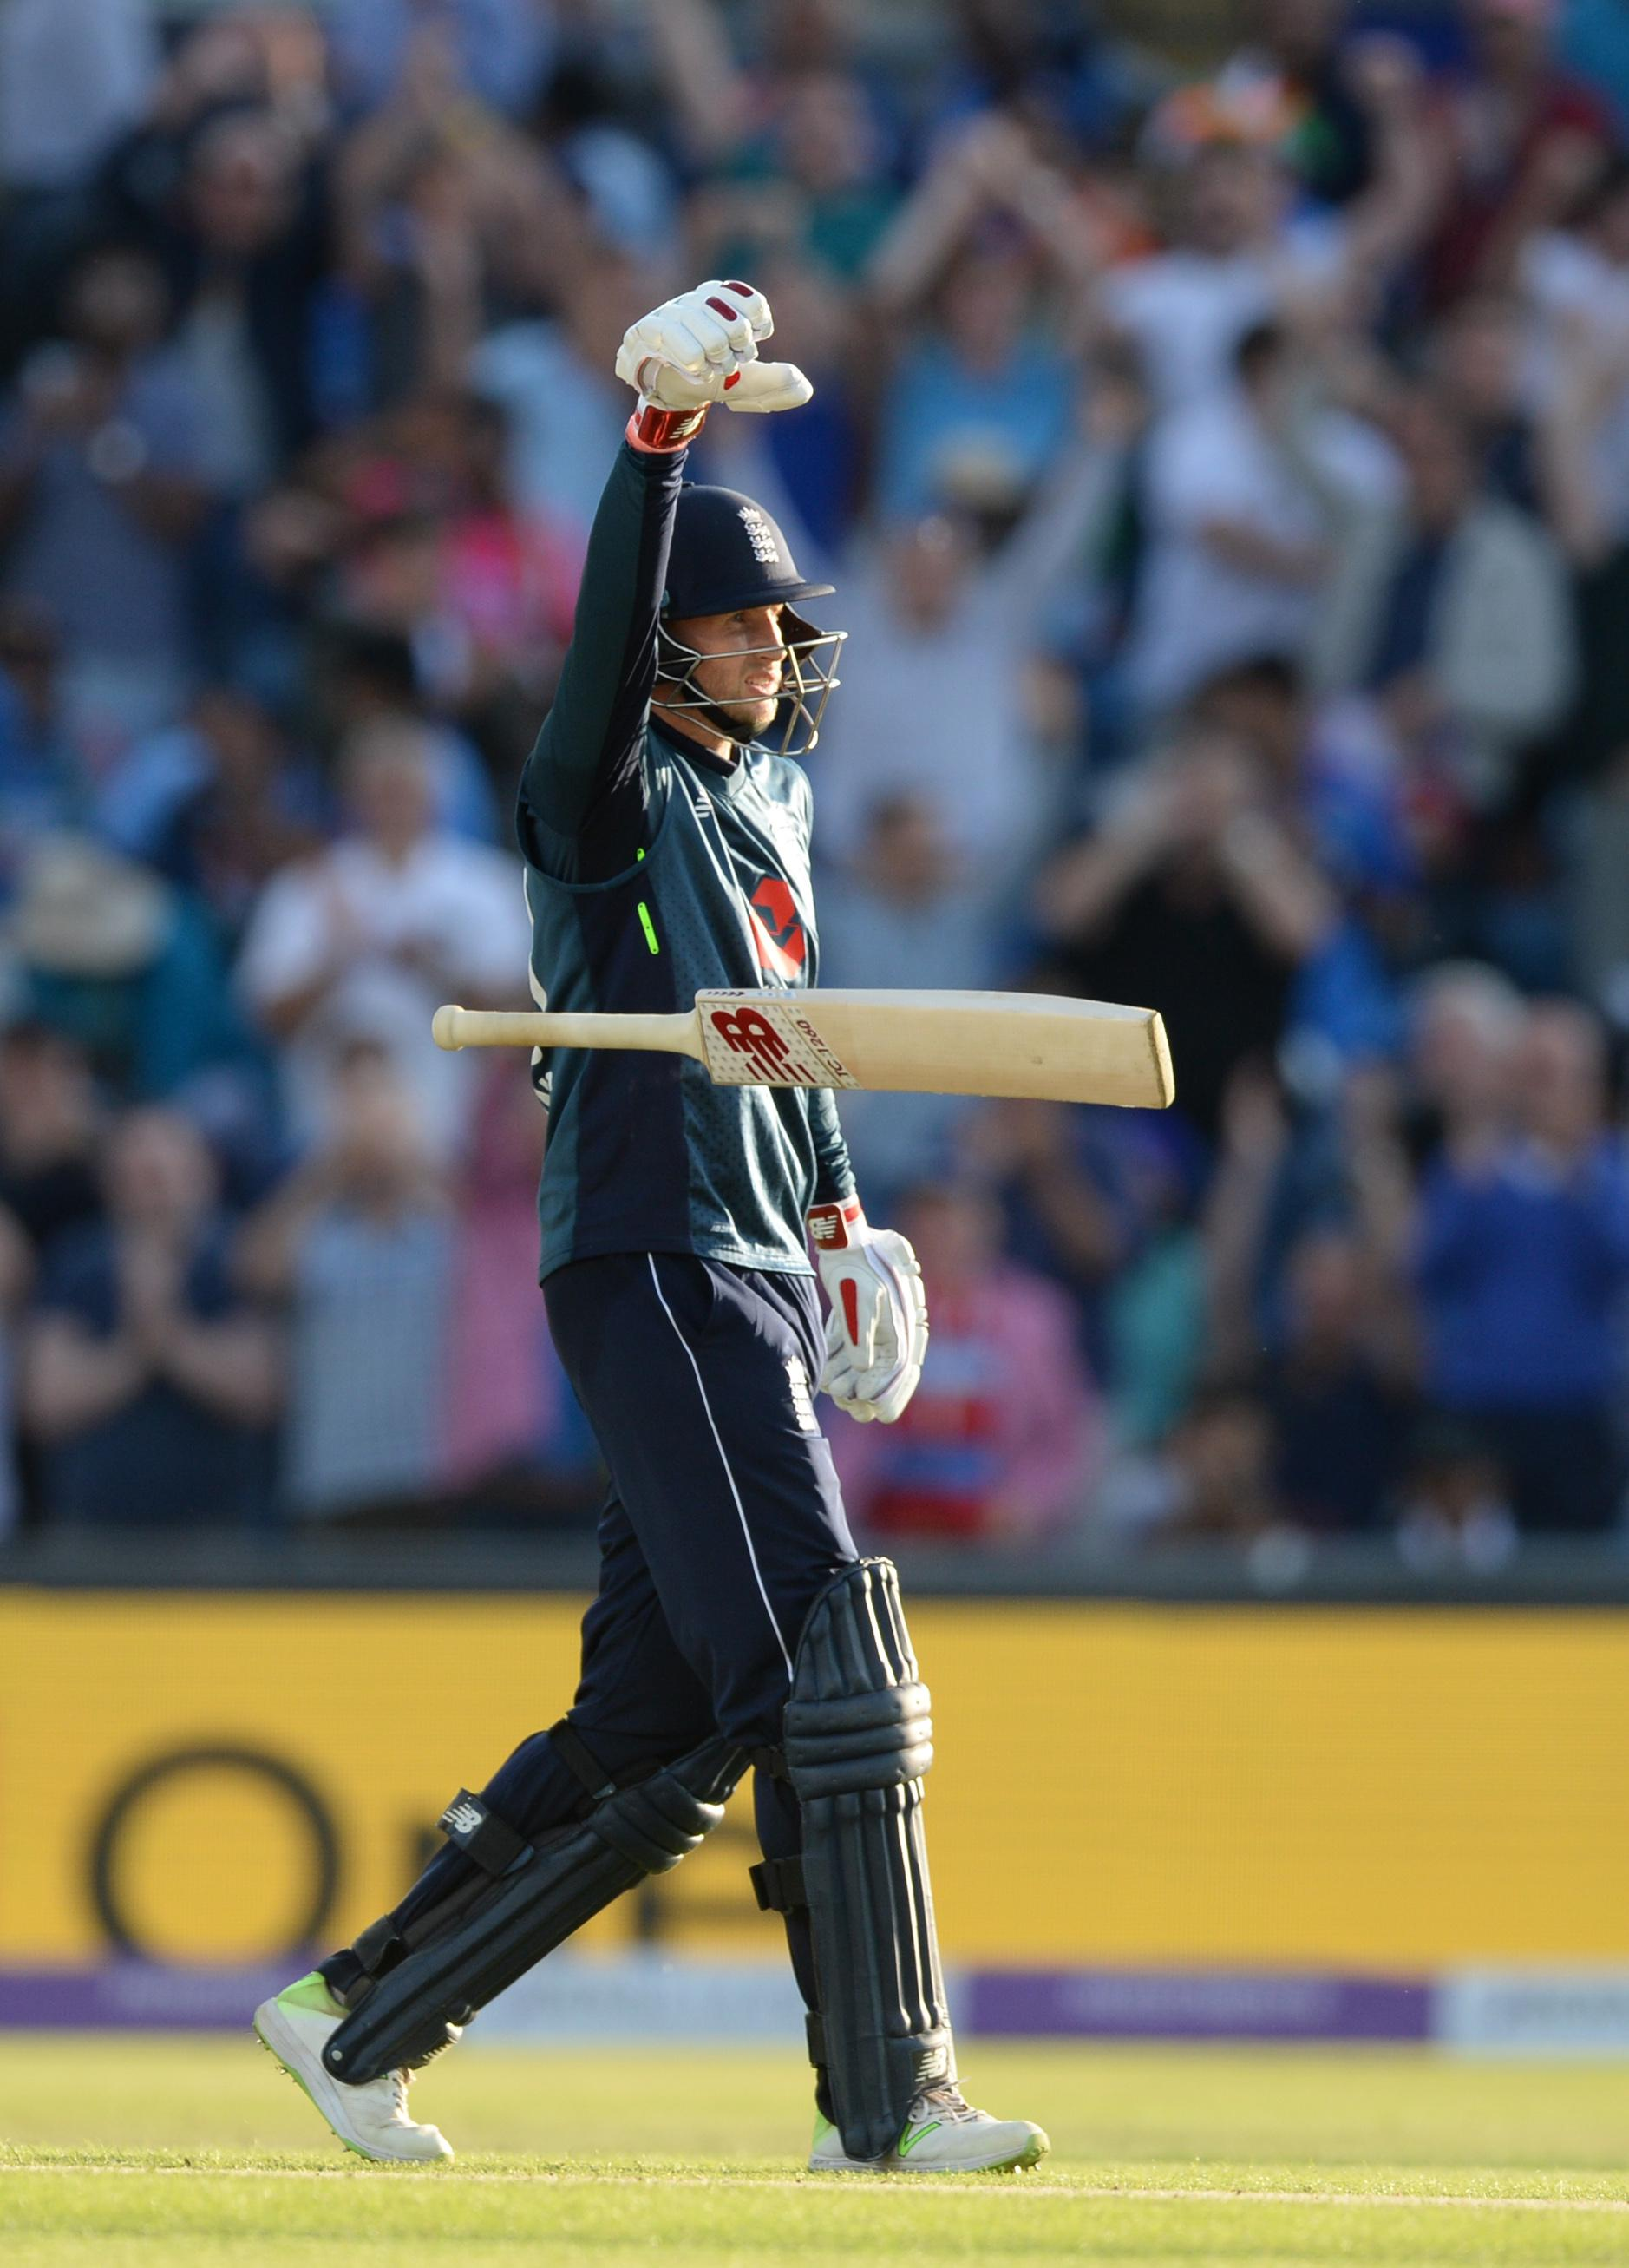 Root walks off at Headingly with a century his name